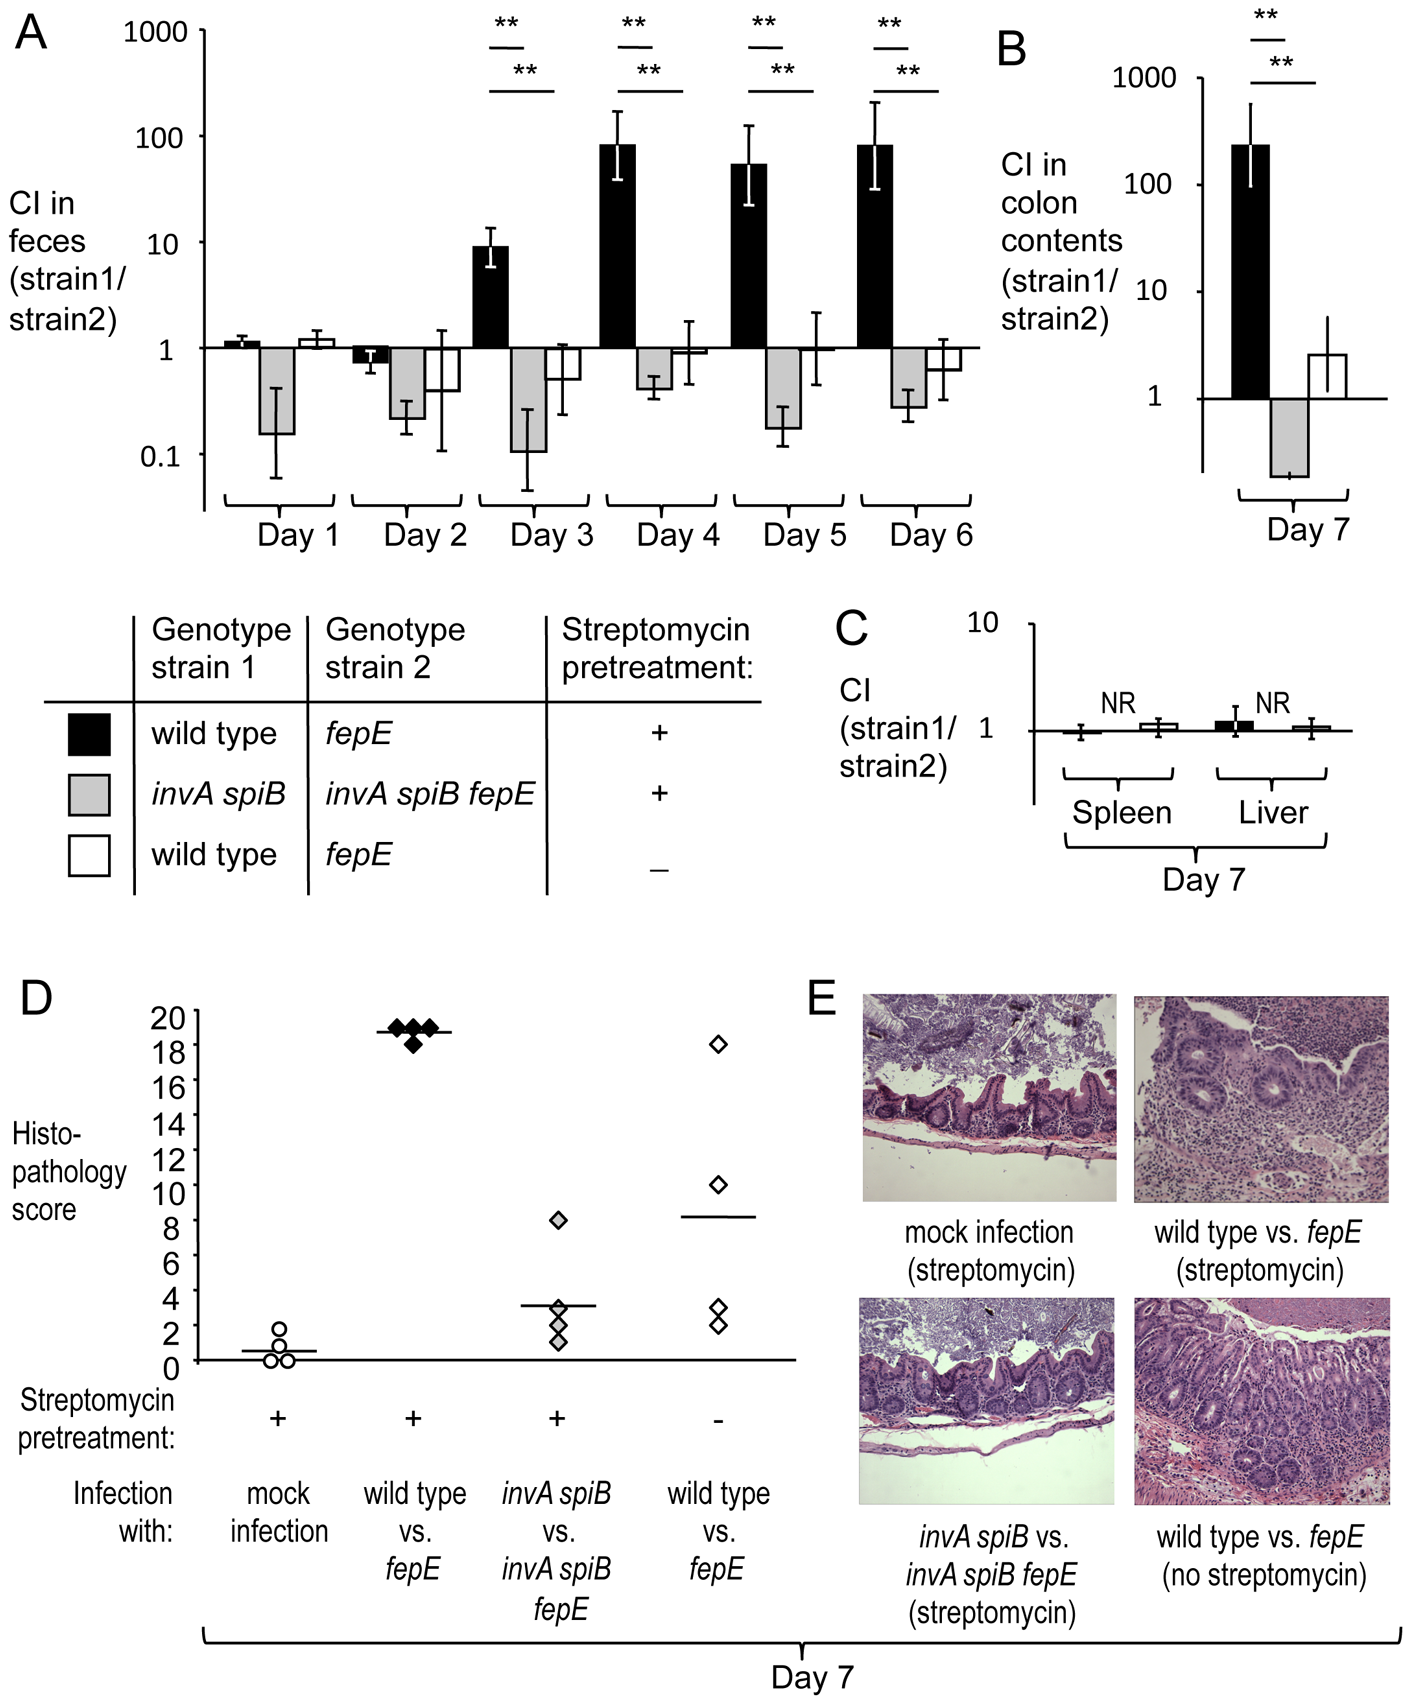 Very long O-antigen chains confer a fitness advantage in the lumen of the inflamed gut.